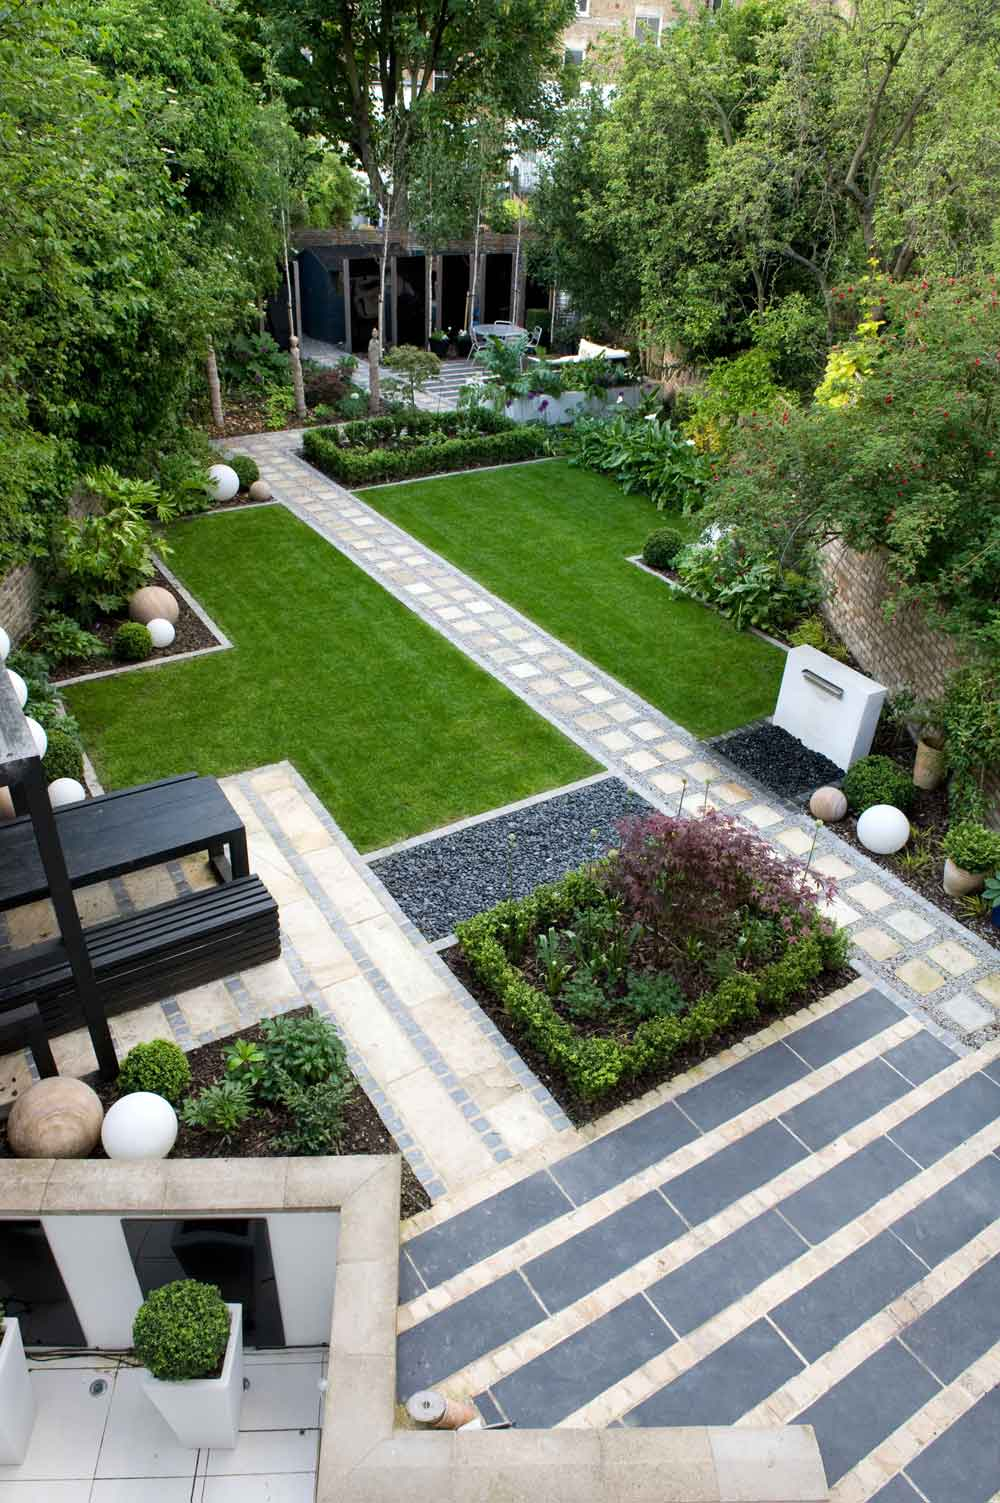 Before & After: A Modern Japanese Garden in North London ... on Backyard Patio Layout id=28371